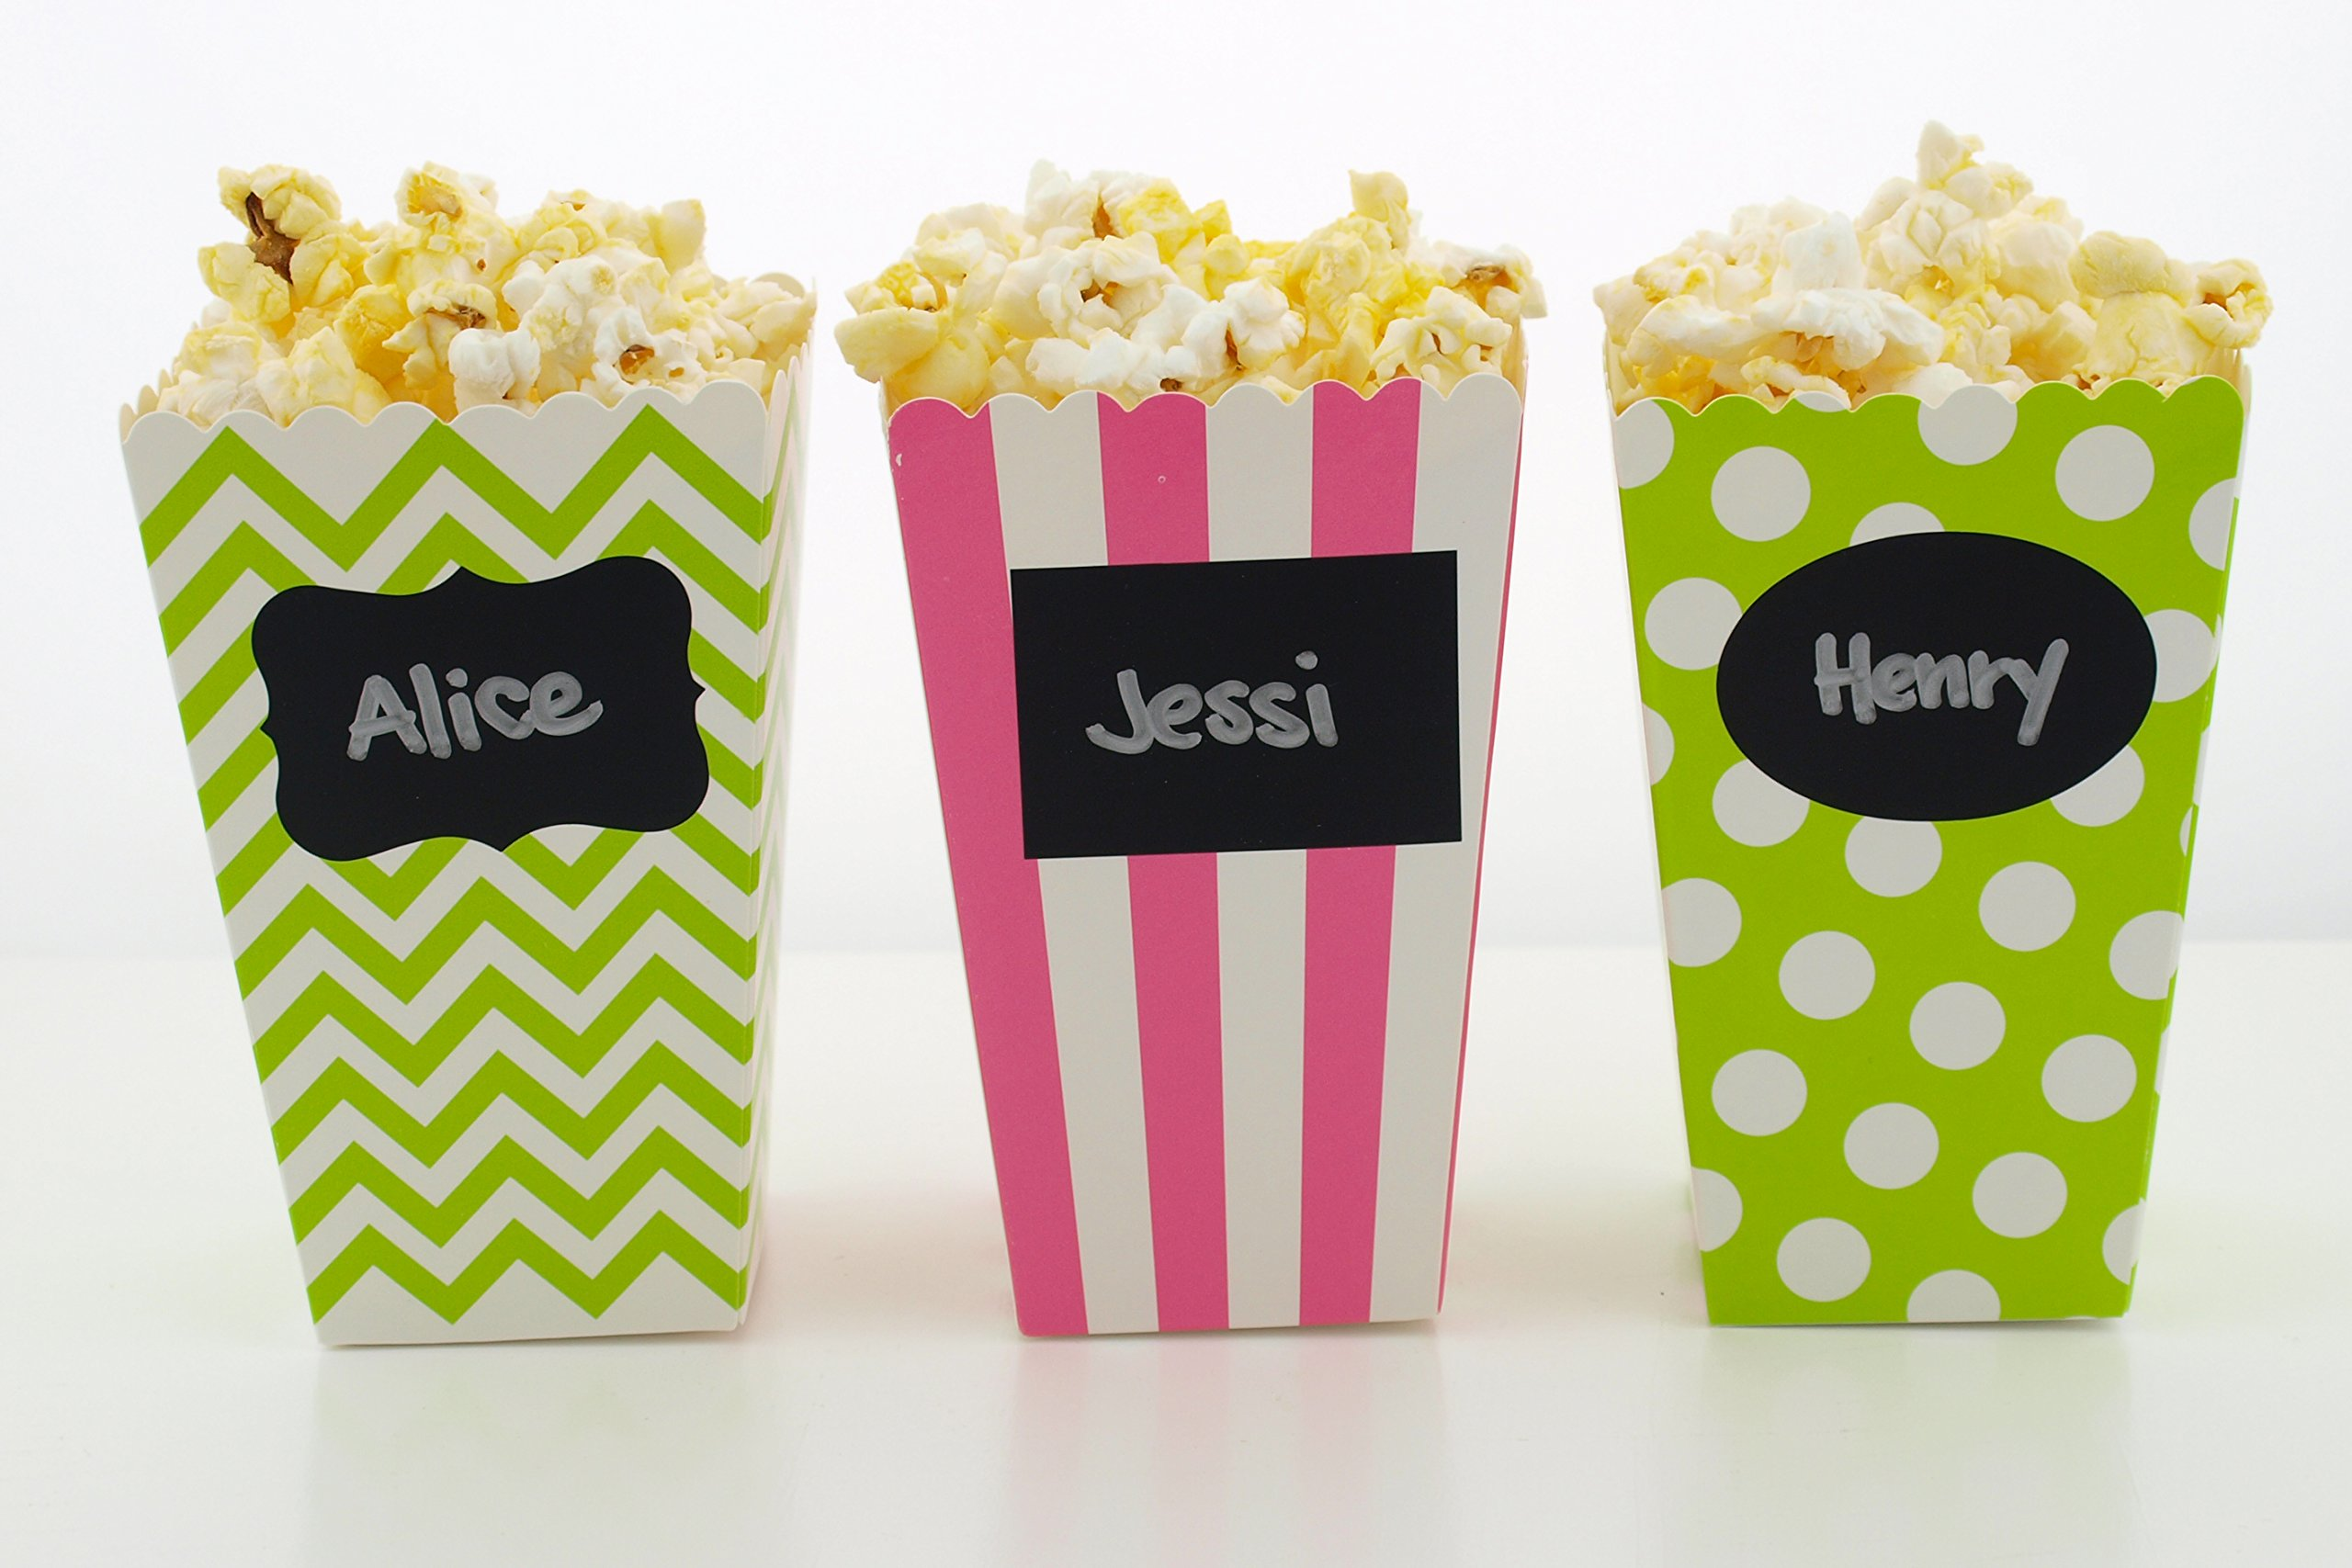 Watermelon Party Popcorn Boxes & Black Label Chalkboard Vinyl Stickers (36 Pack) - Watermelon Party Favors, Miniature Movie Theatre Popcorn Tubs for Summer Watermelon Birthday Party Supplies